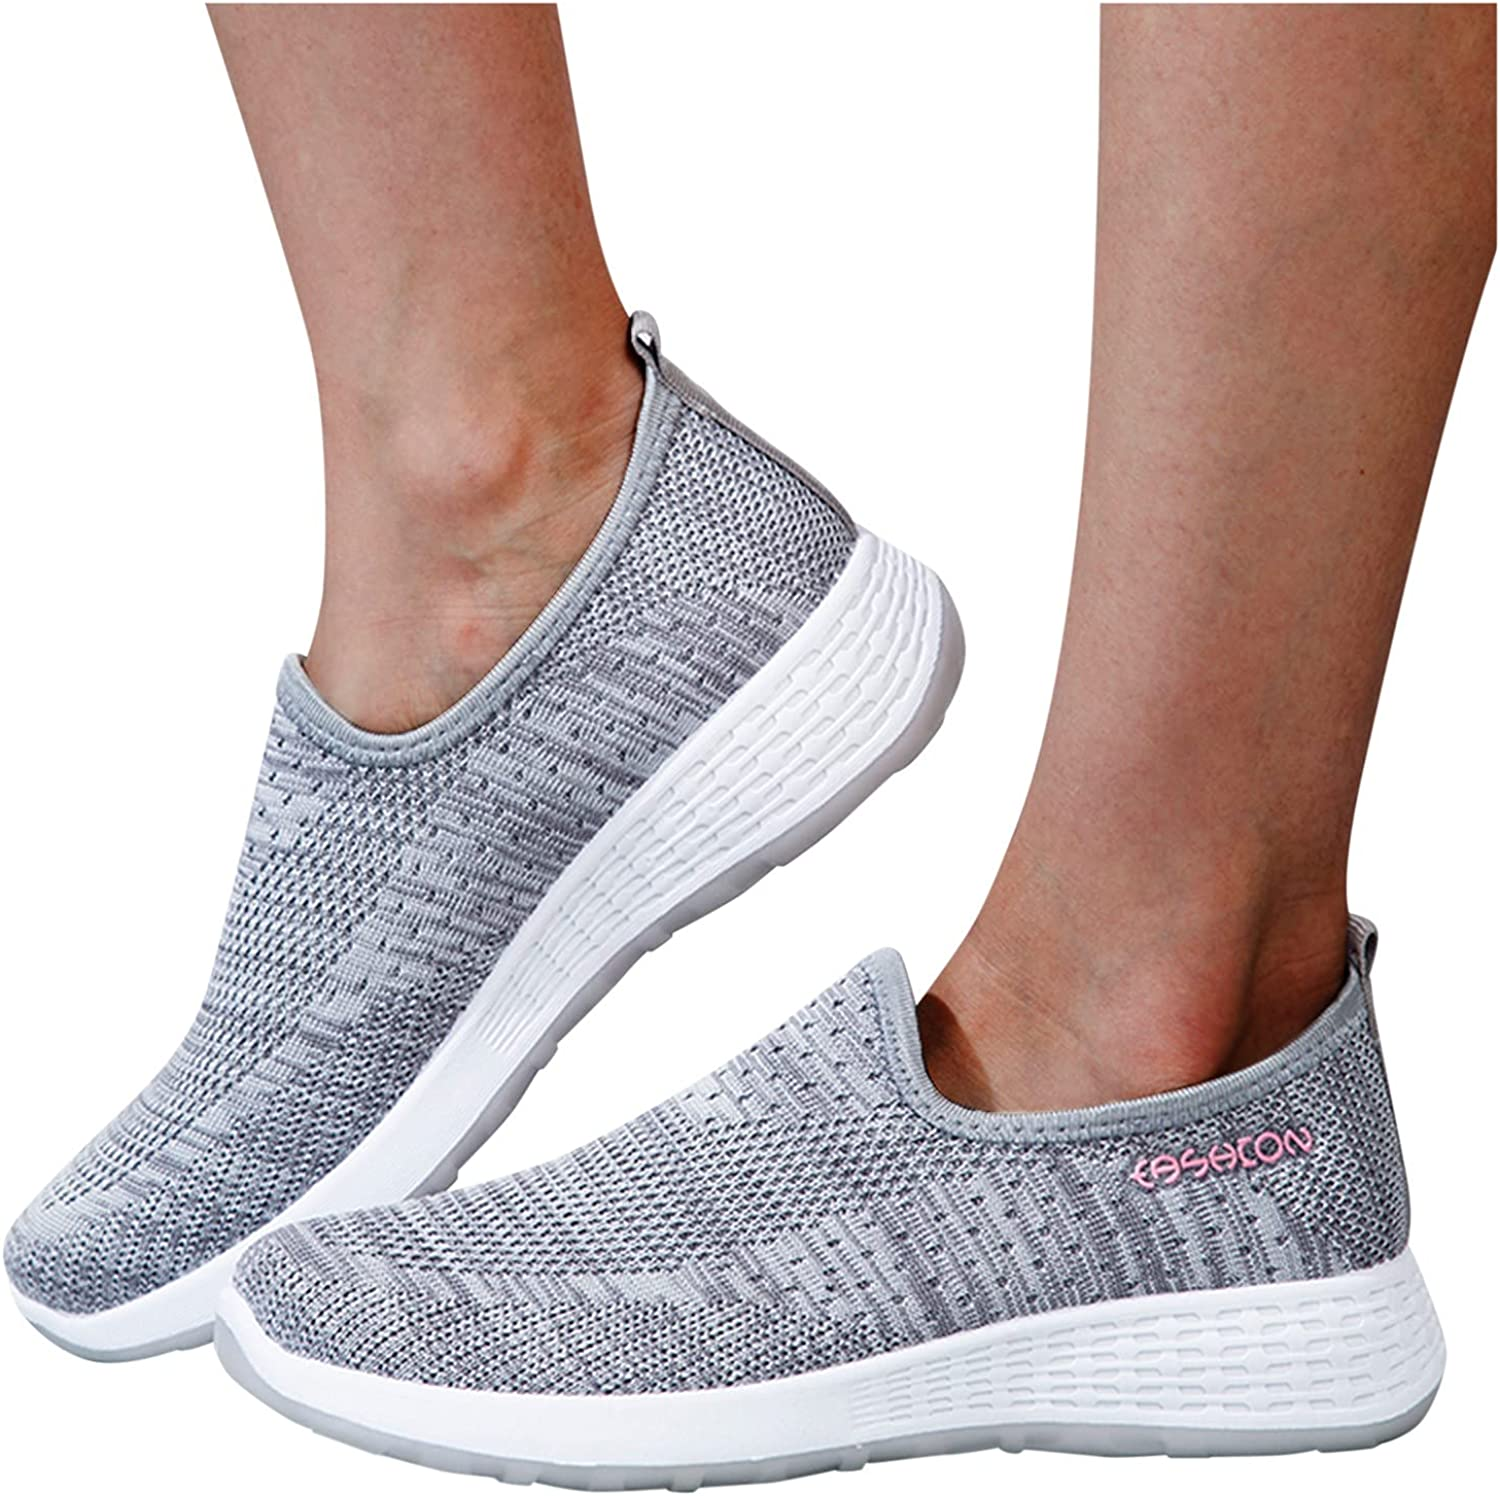 Masbird Sneakers for Women Fashion Latest item Shoes Sli Comfortable Running Now free shipping